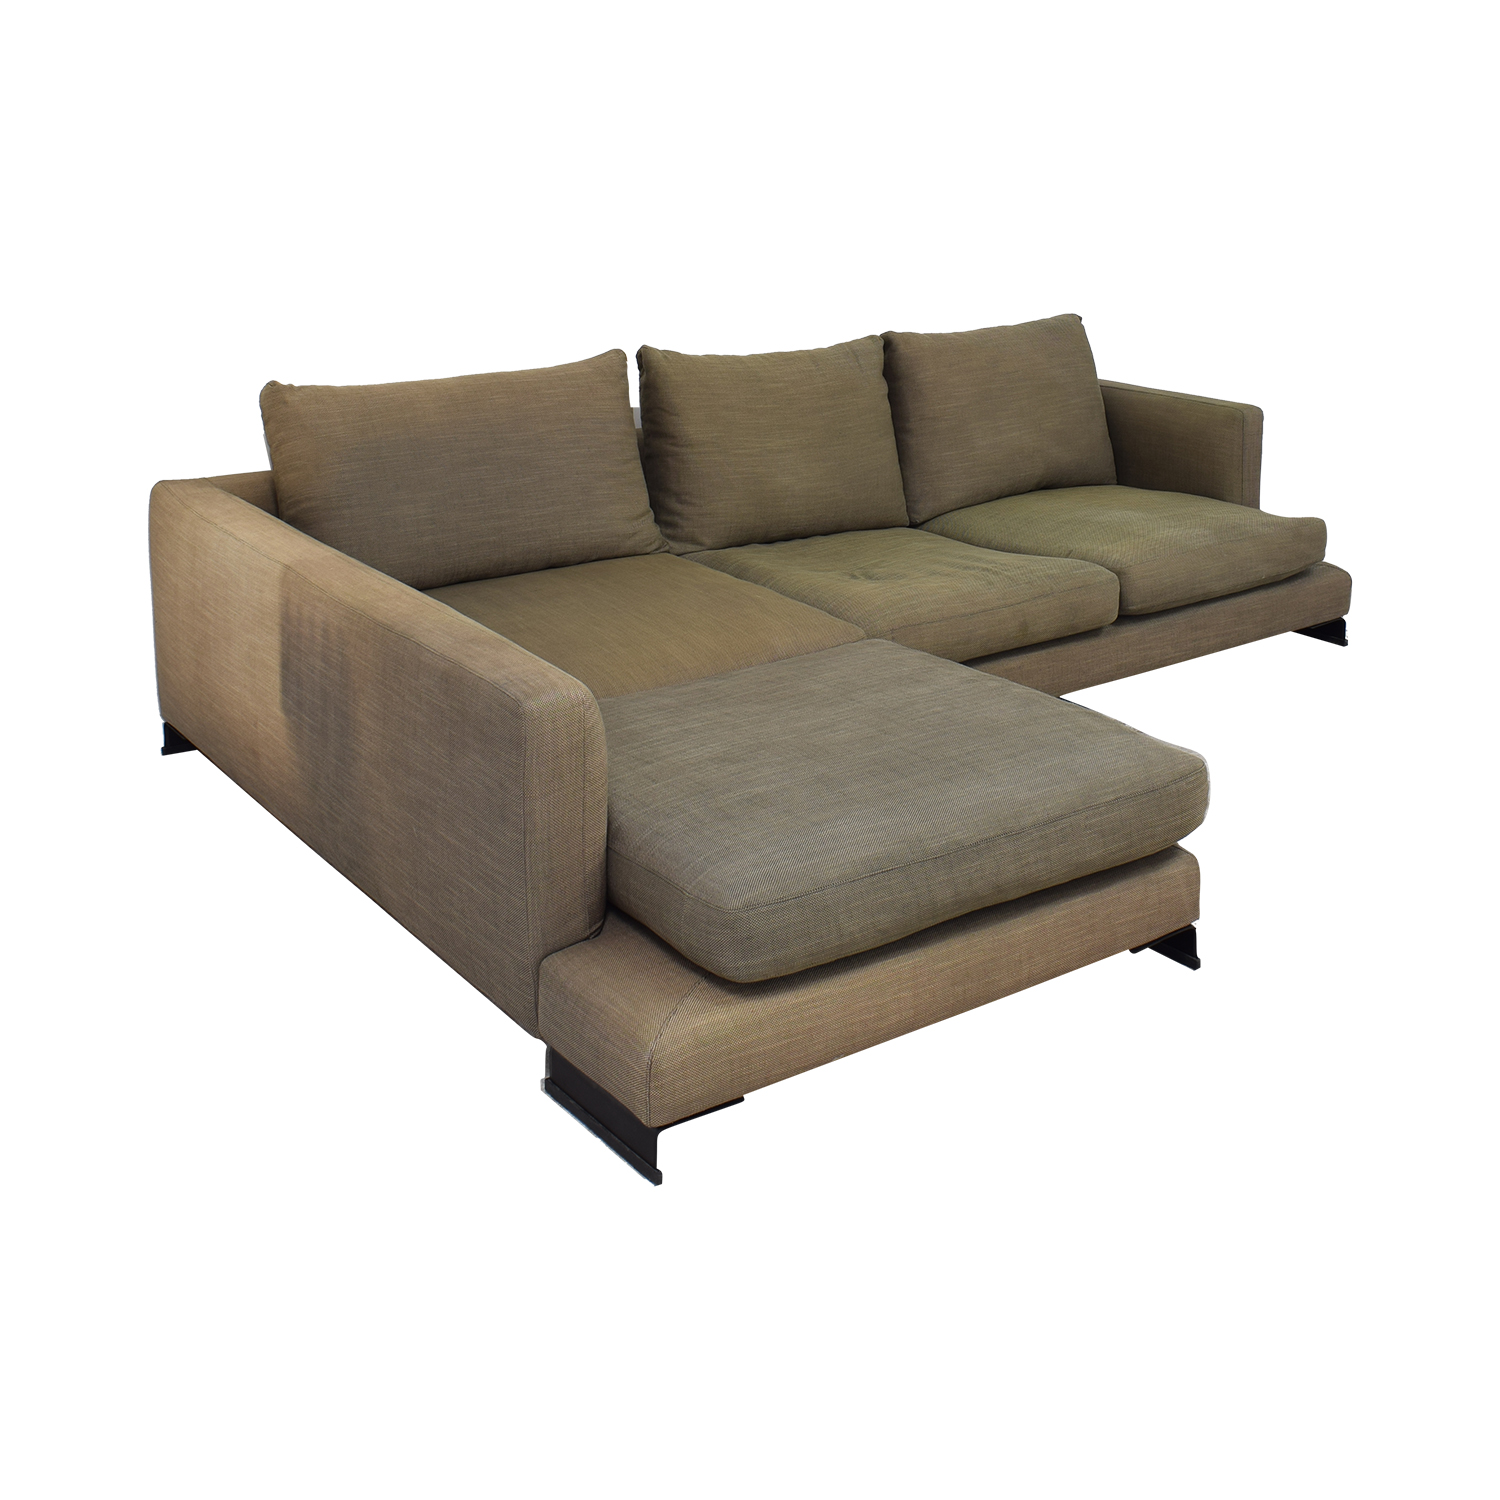 buy Camerich Lazy Time Sectional Sofa Camerich